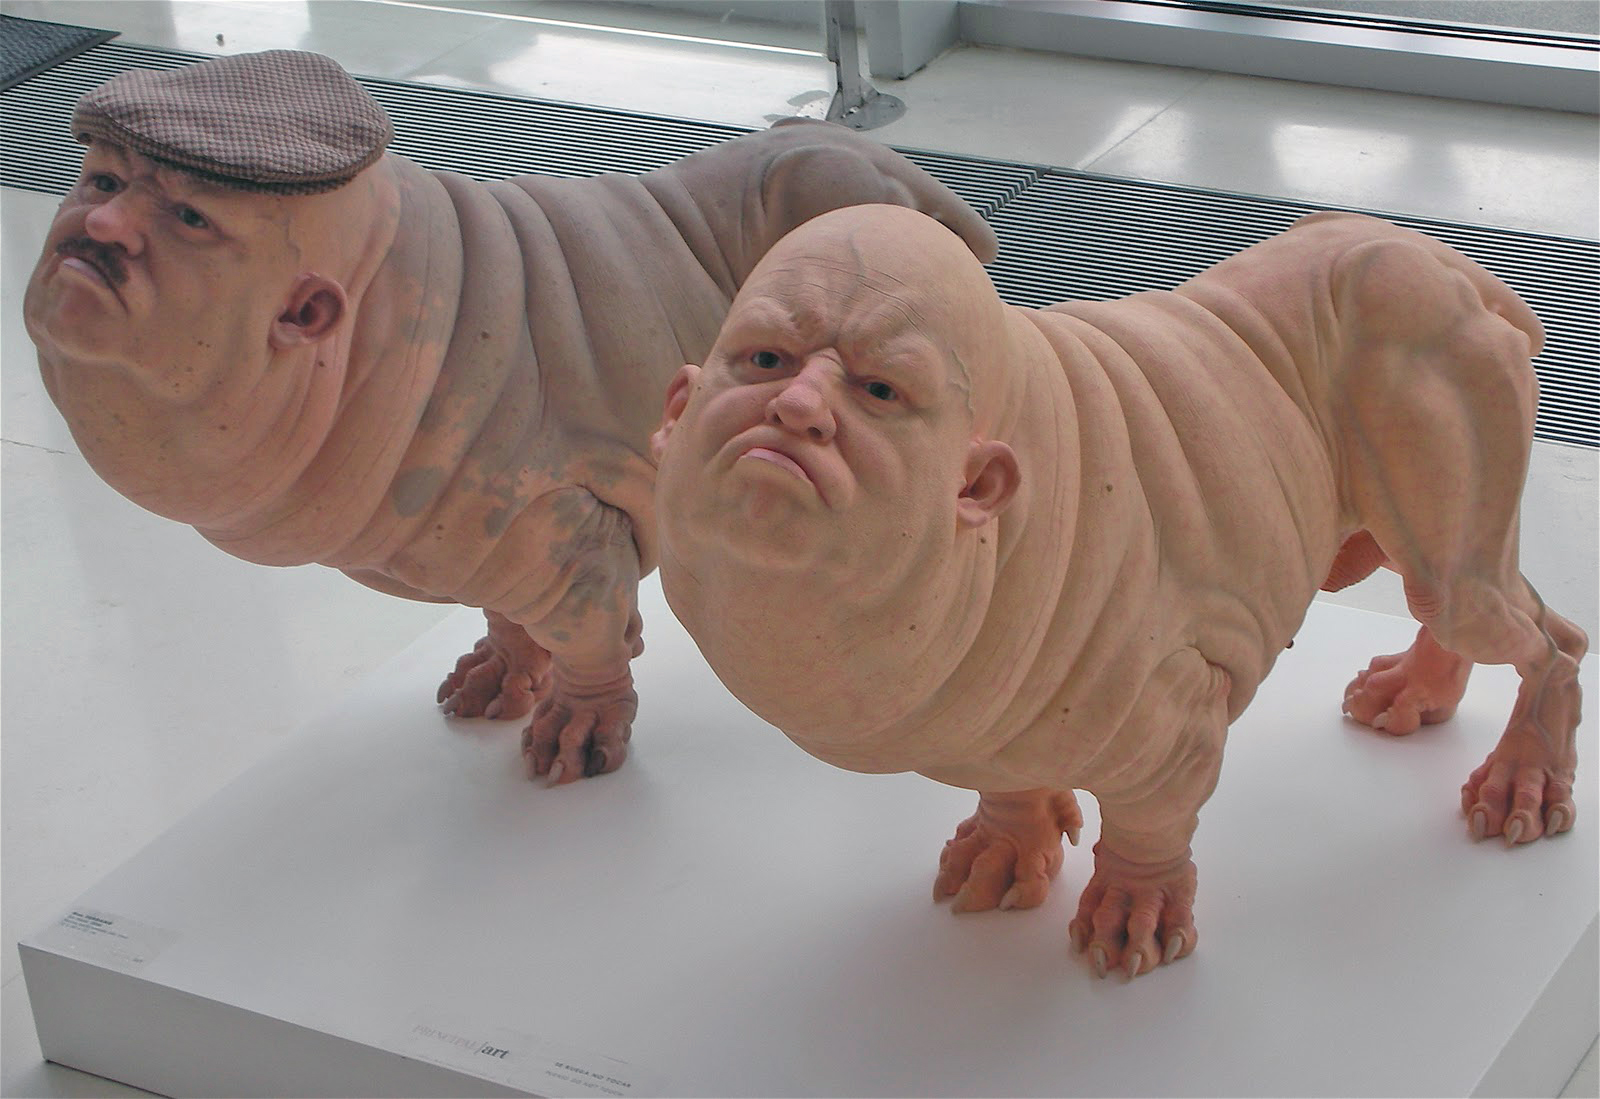 patricia piccinini materials and techniques A maryland man was sentenced to 20 years in federal prison for conspiring to provide material support and  the federal bureau of investigation's albuquerque.